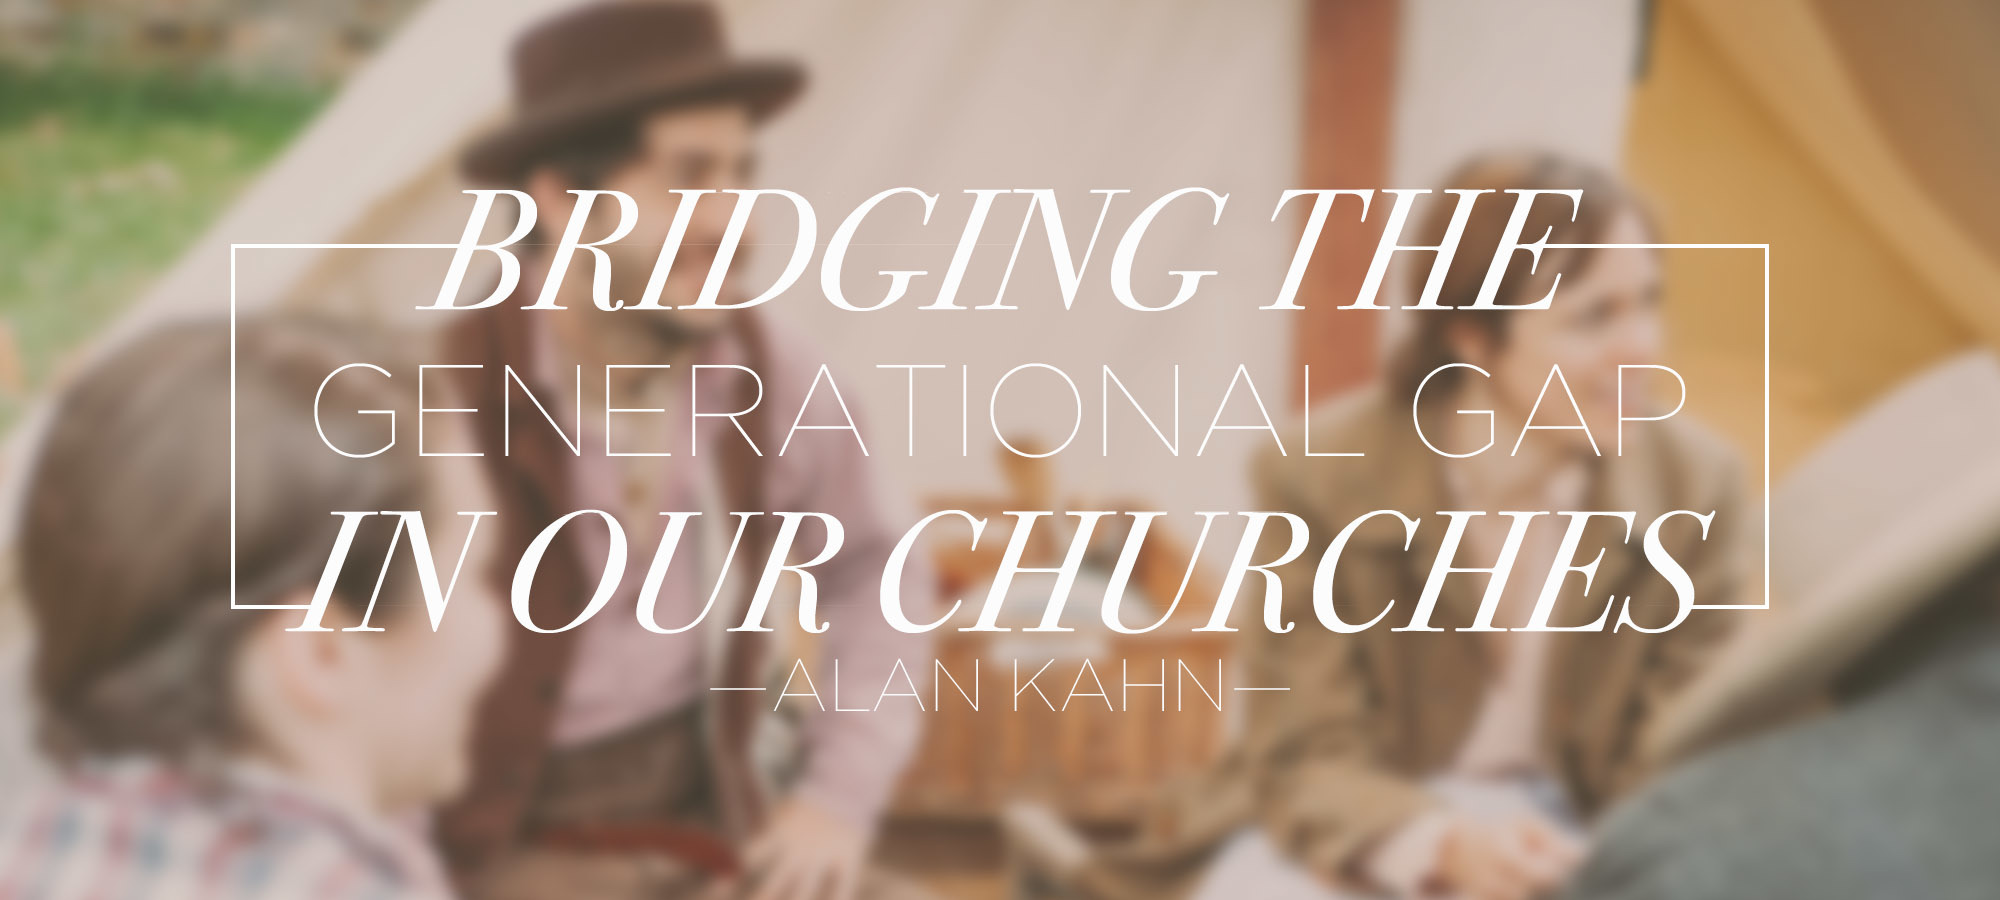 Bridging the Generational Gap in Our Churches